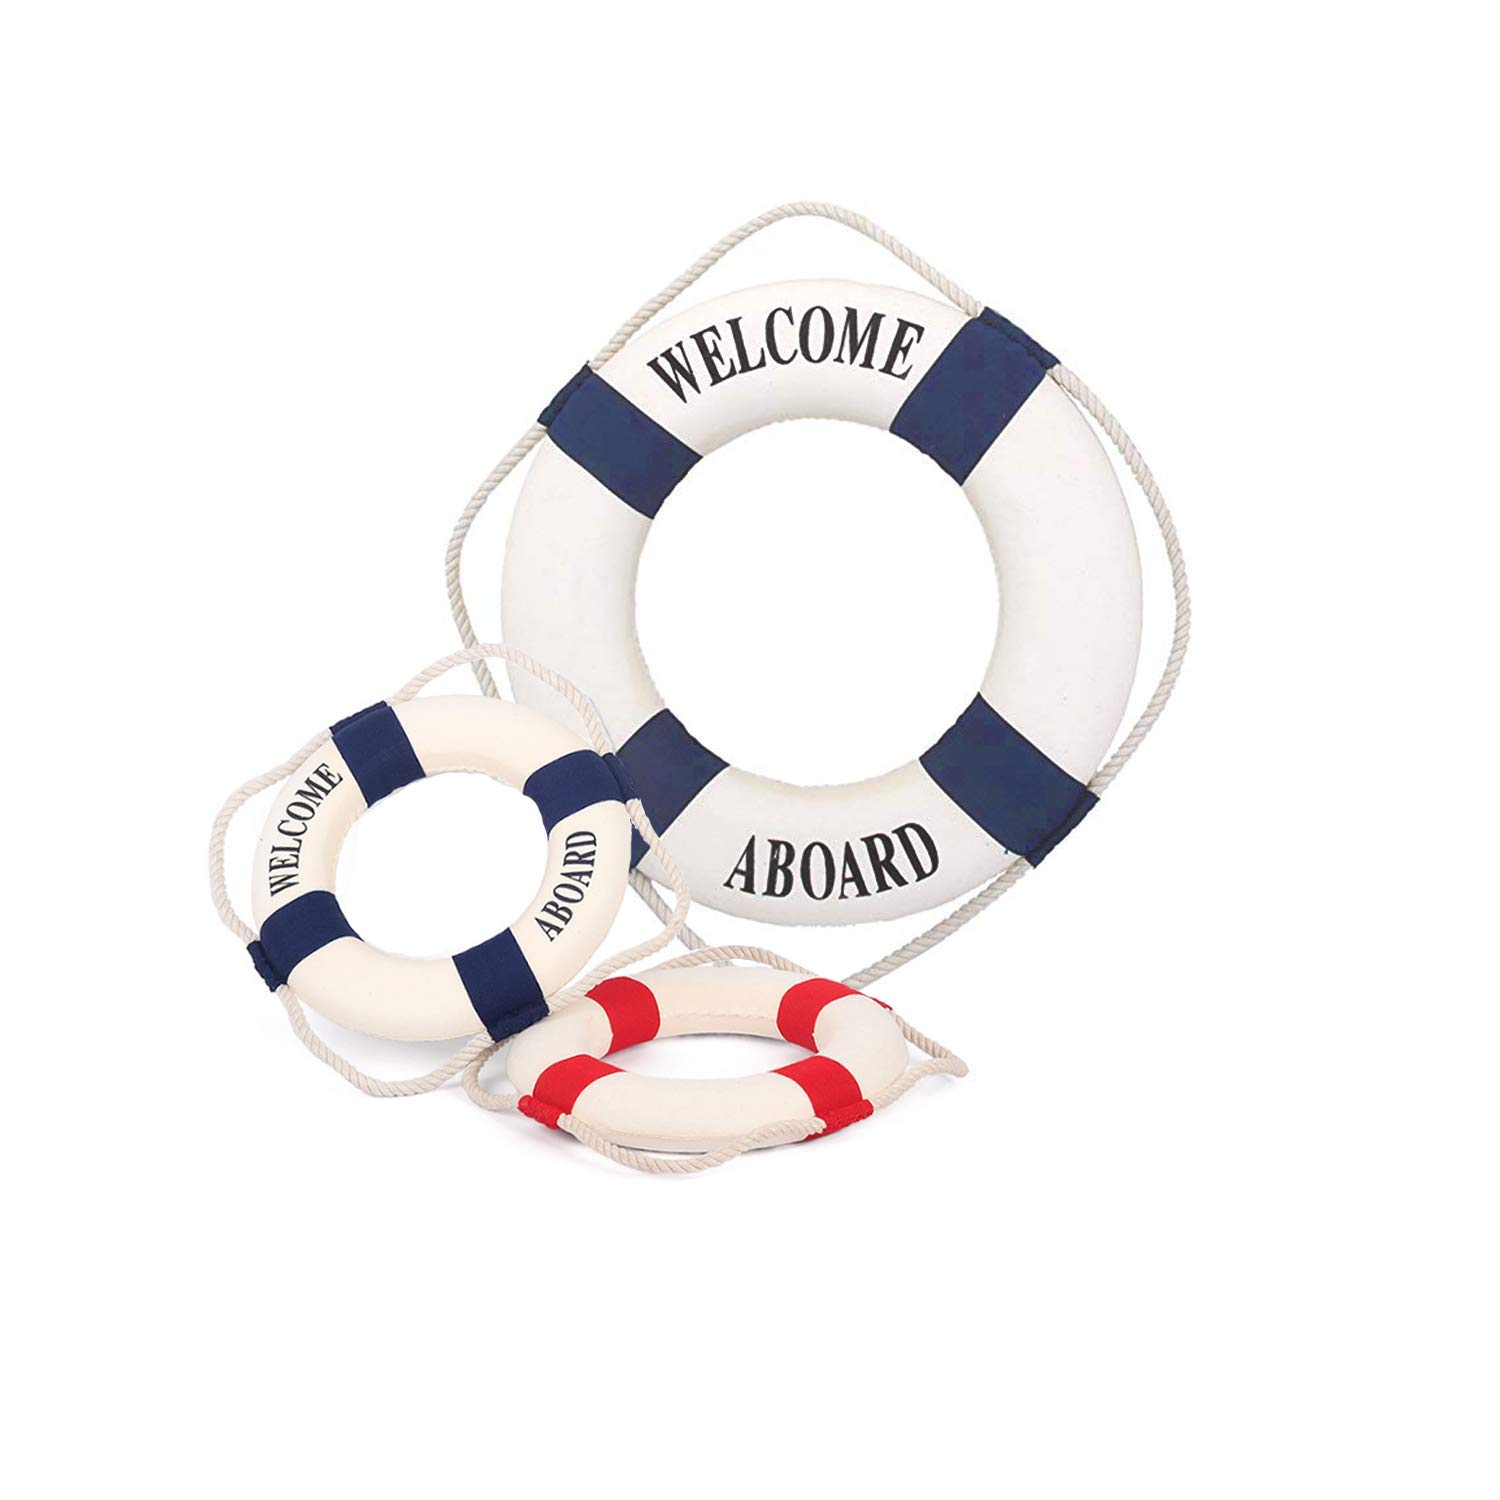 Szsrcywd Decor Life Ring, 3 PCS Welcome Aboard Life Ring Mixed Size Mediterranean Style Nautical Life Ring for Home Decoration (Red and Blue)